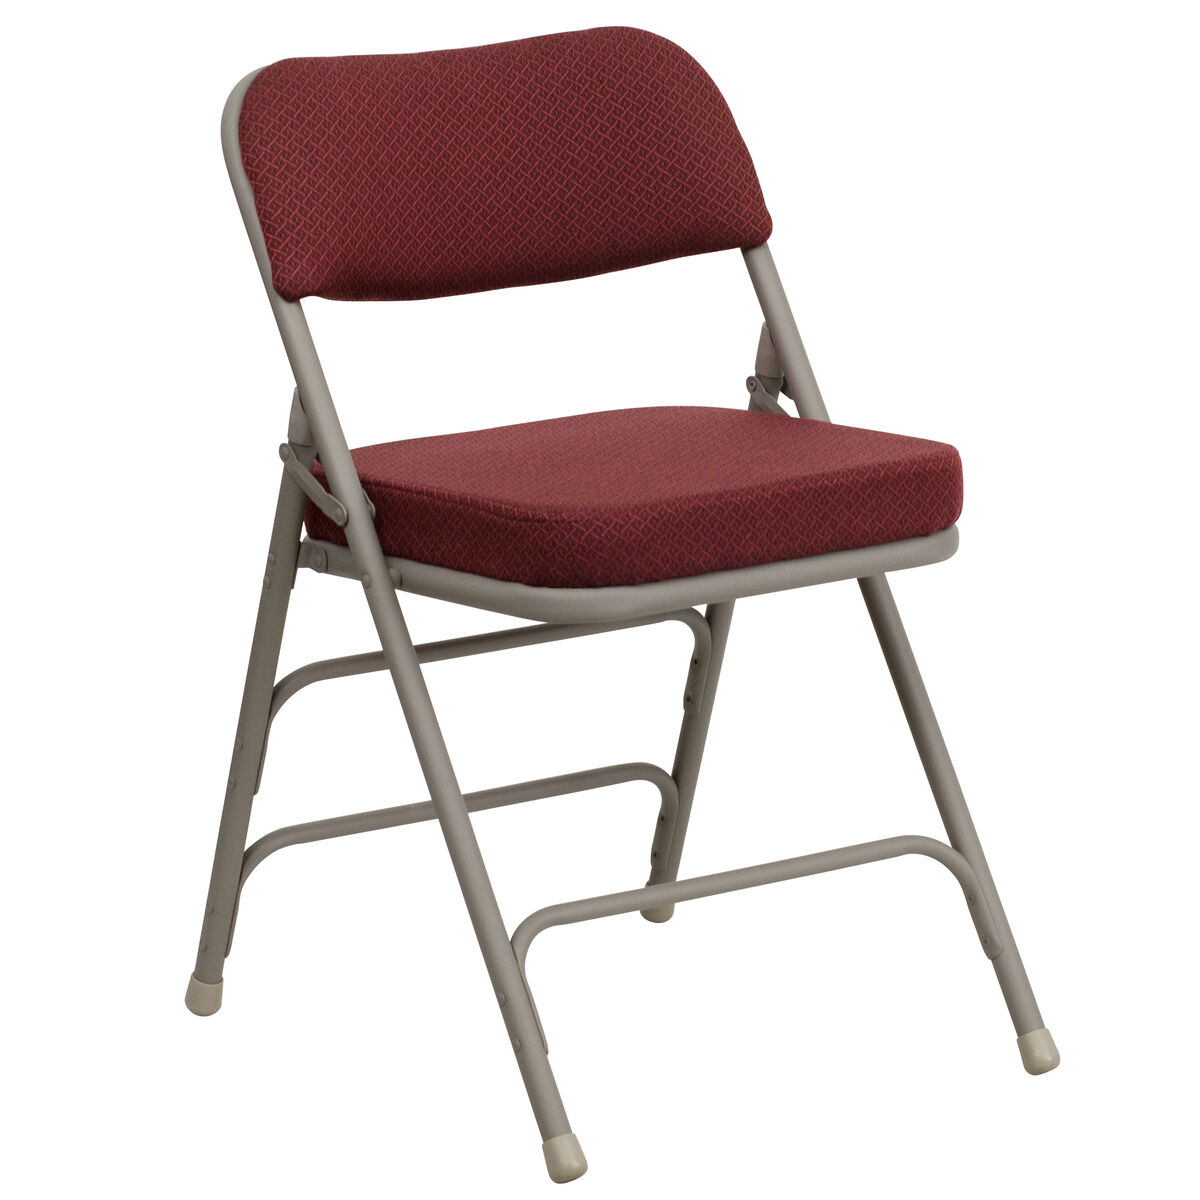 Burgundy Fabric Folding Chair Ha